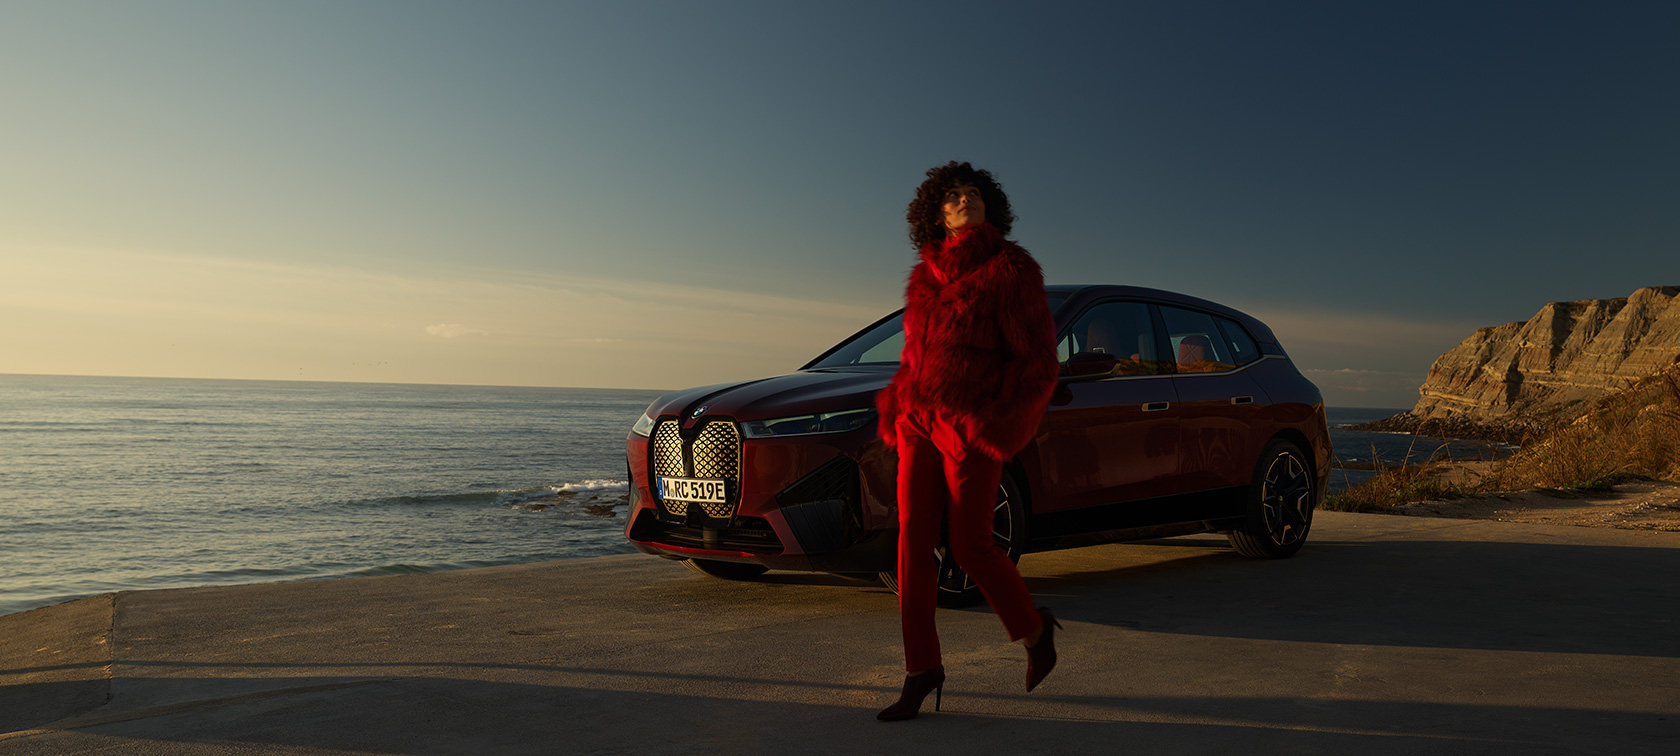 BMW iX Aventurin Red i20 three-quarter side view in front of the coast with model